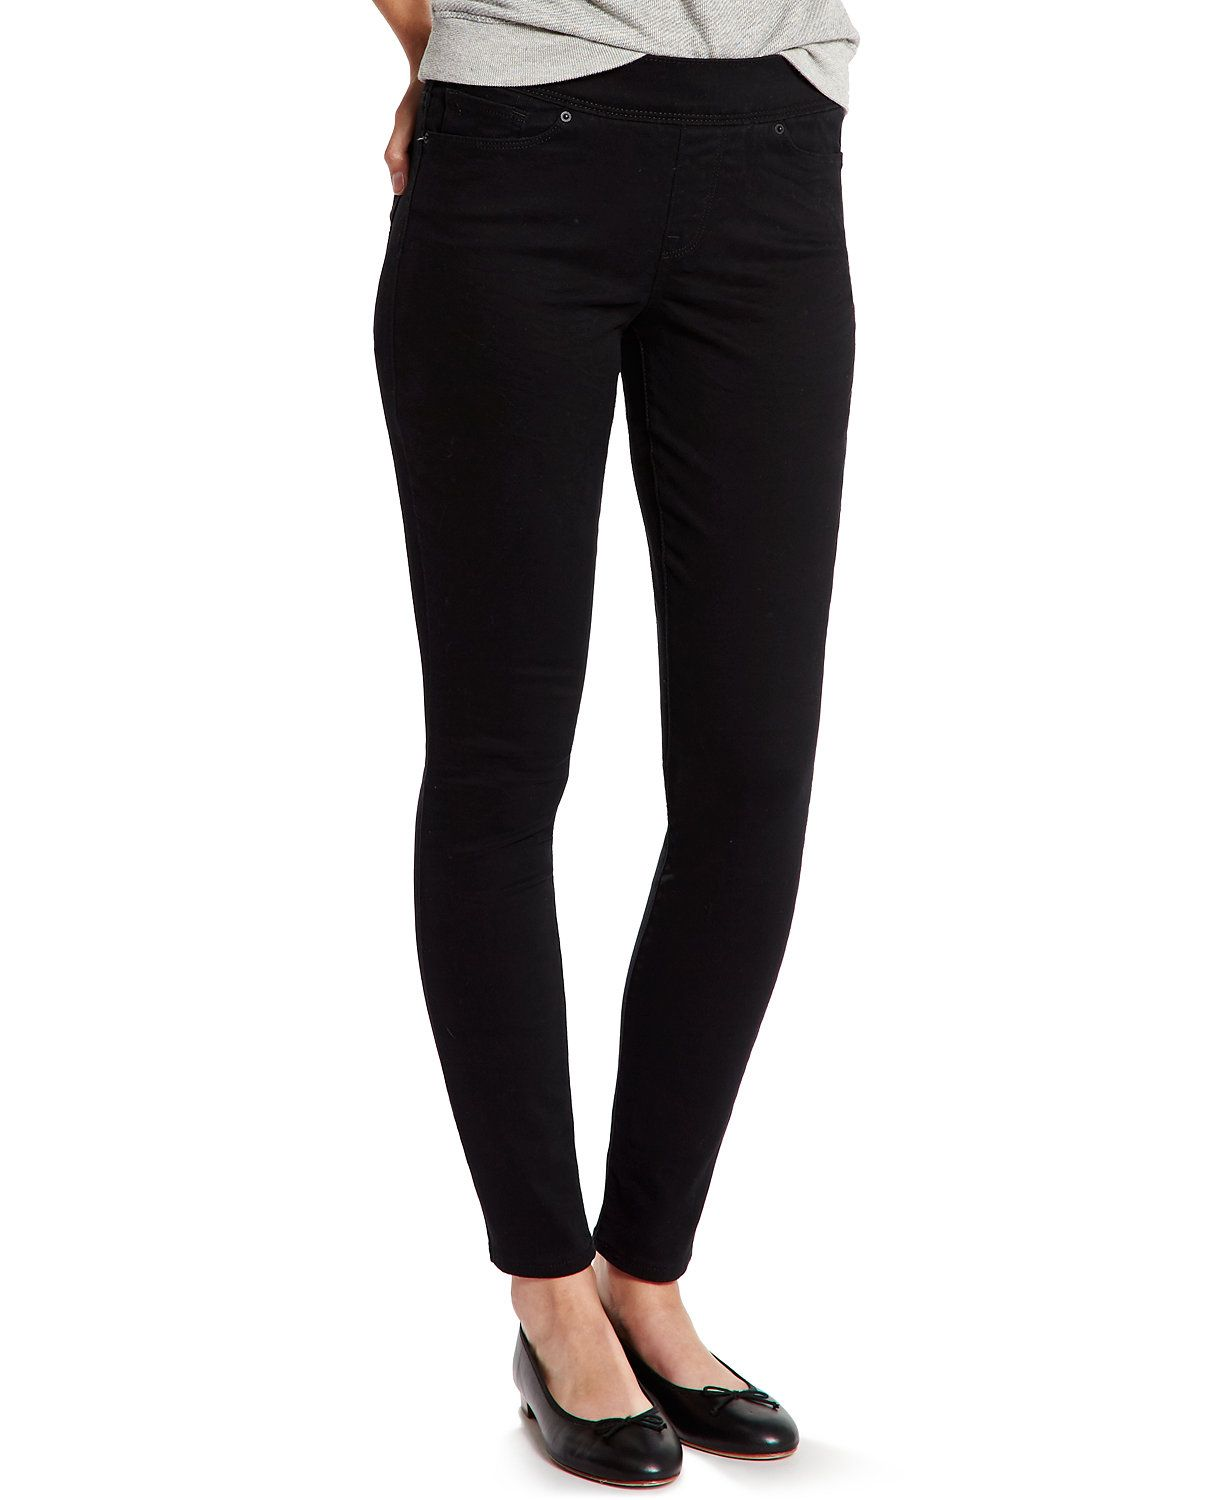 aa84b610 Skinny Perfectly Slimming Pull-On Jeggings | UniformMe | Levis ...